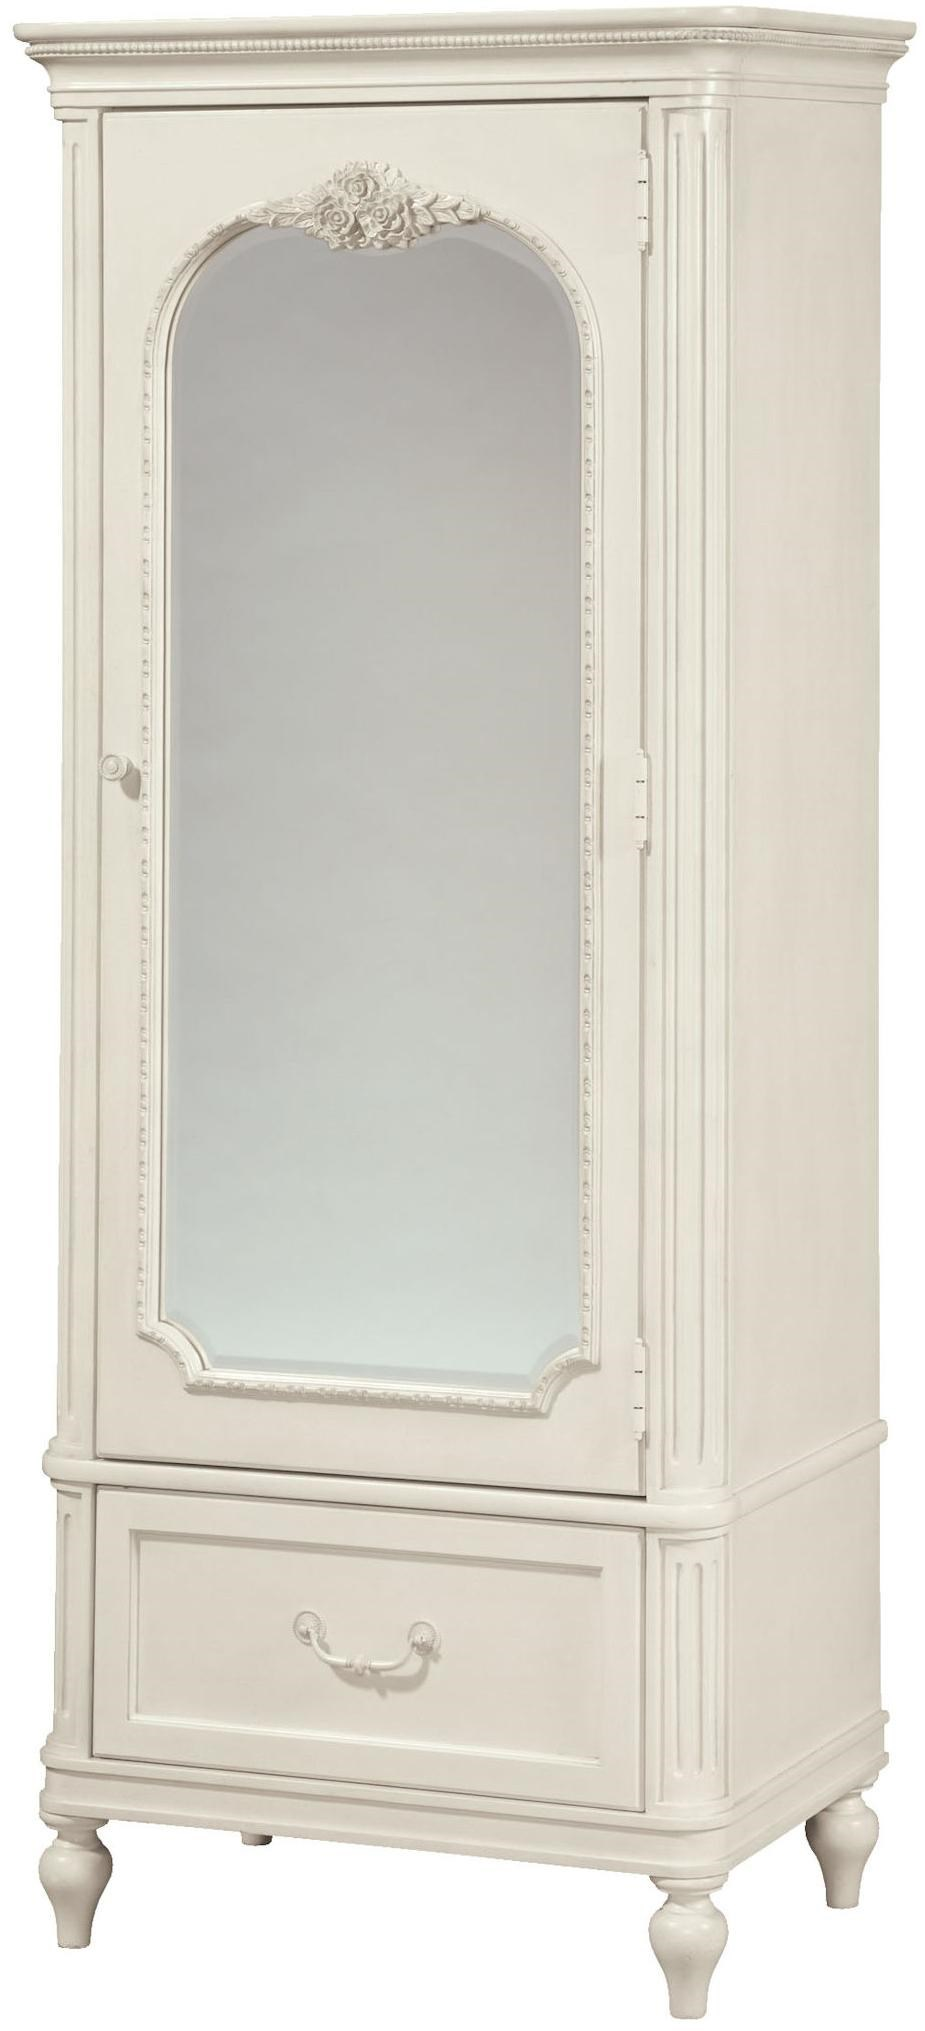 Smartstuff Gabriella Mirrored One-Door Armoire with Cork Board \u0026 Variety of Storage Spaces